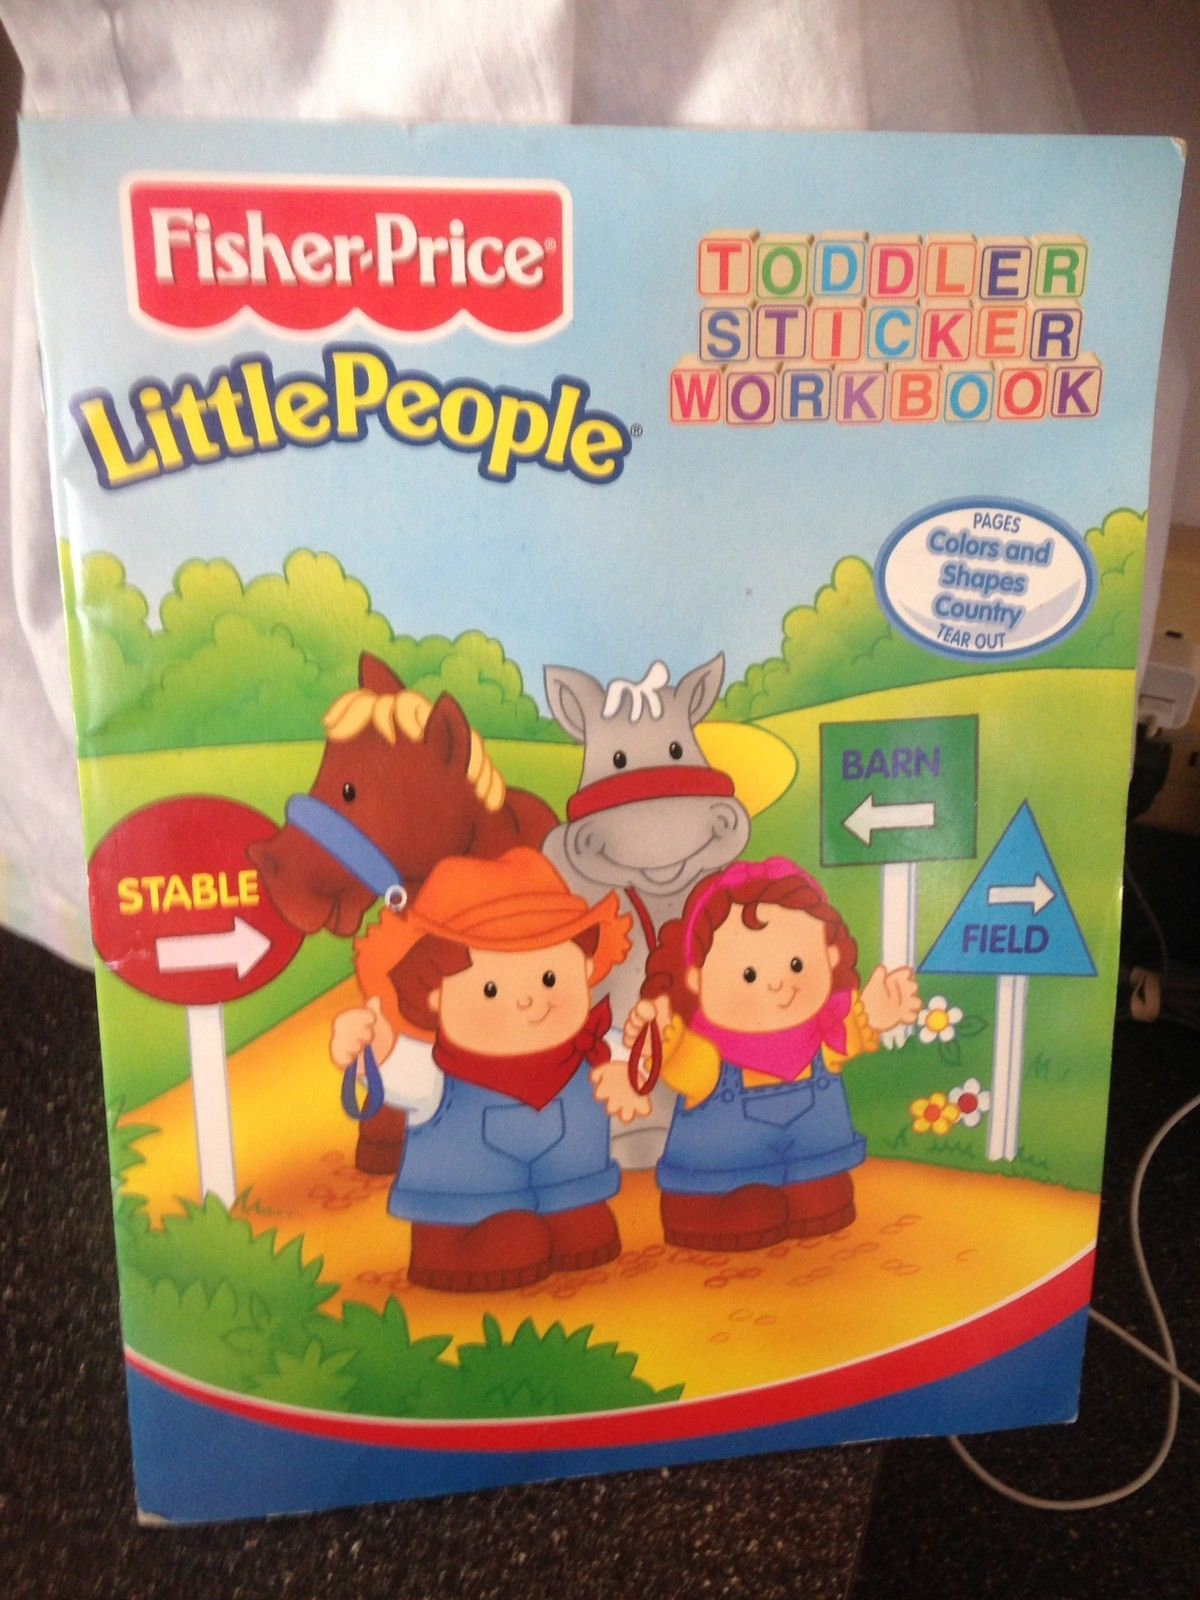 Fisher Price Little People Toddler Sticker Workbook Colors and Shapes Country